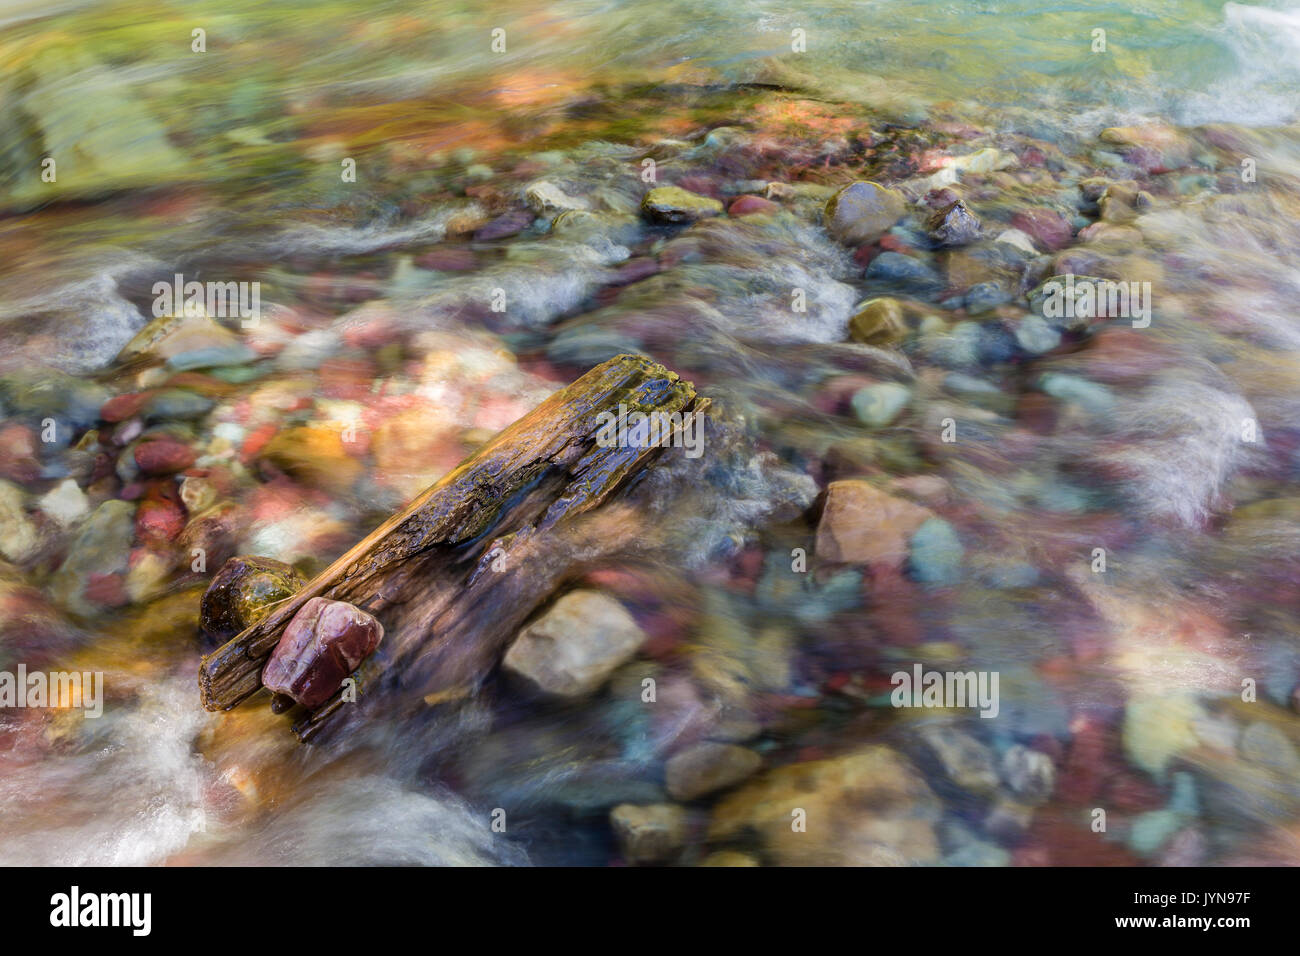 The crystal clear waters of Wilbur Creek rushes over colorful river rocks in Glacier National Park, Montana - Stock Image